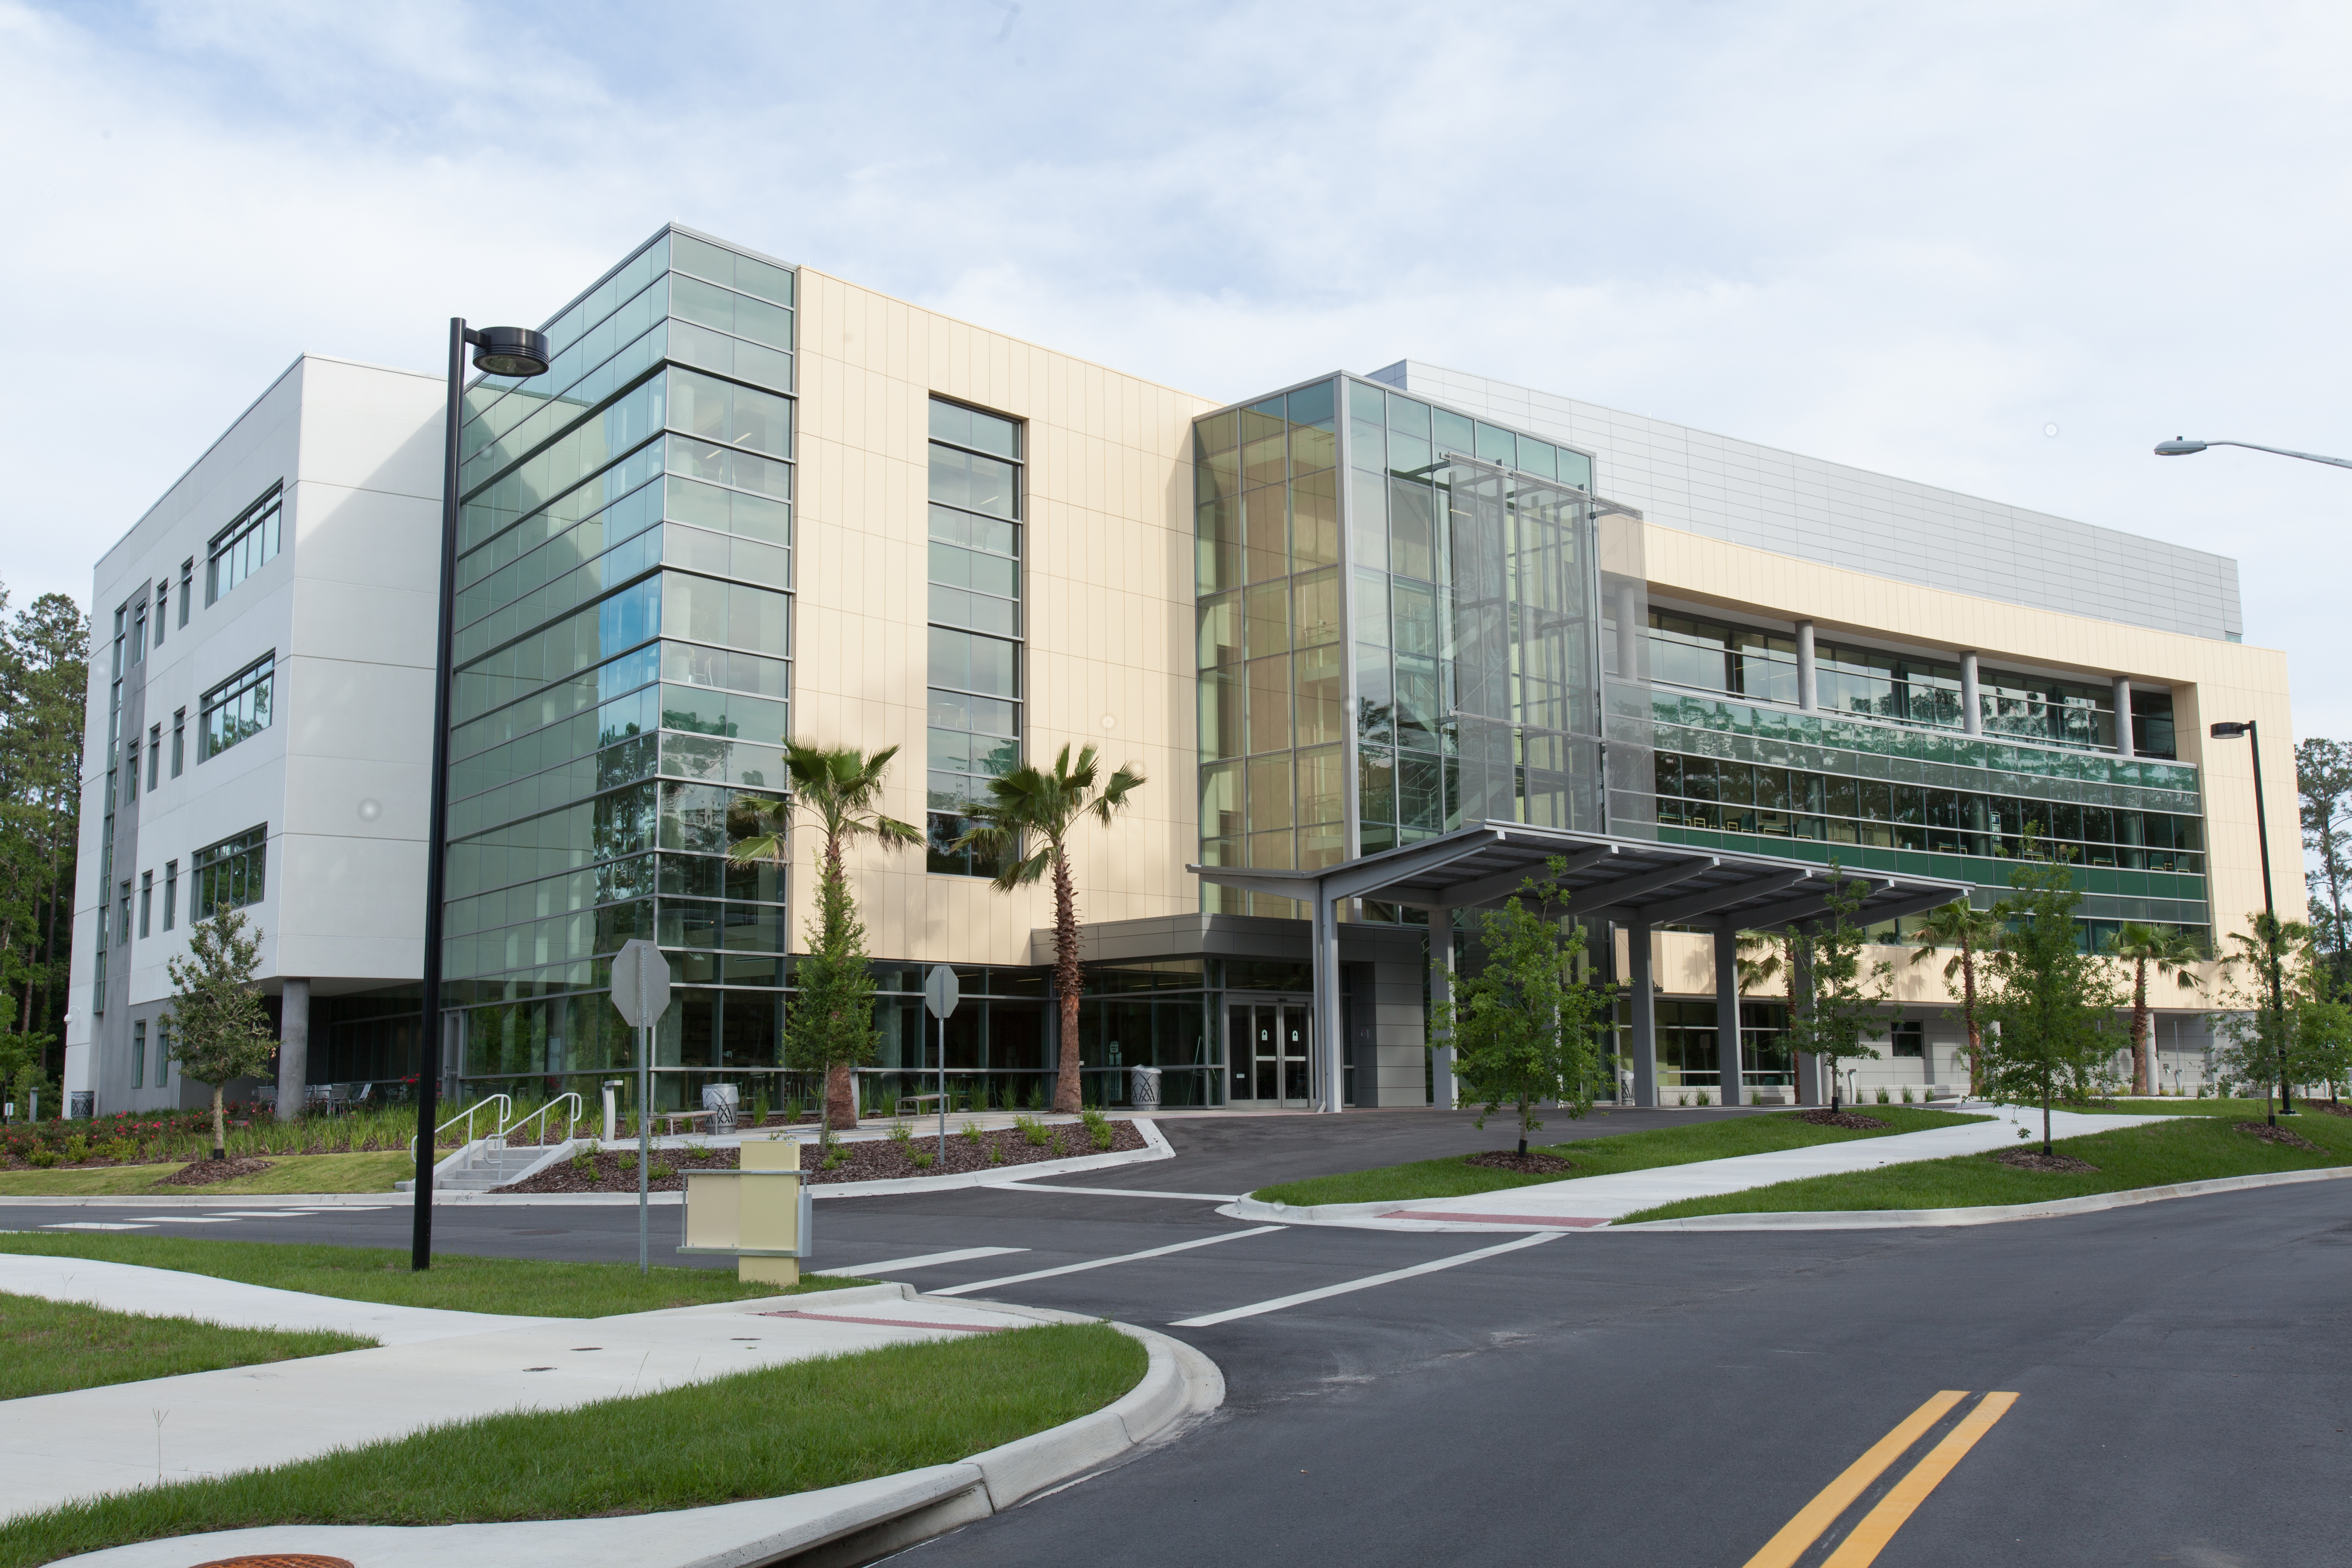 Uf Health Springhill Receives Leed Certification For Environmentally